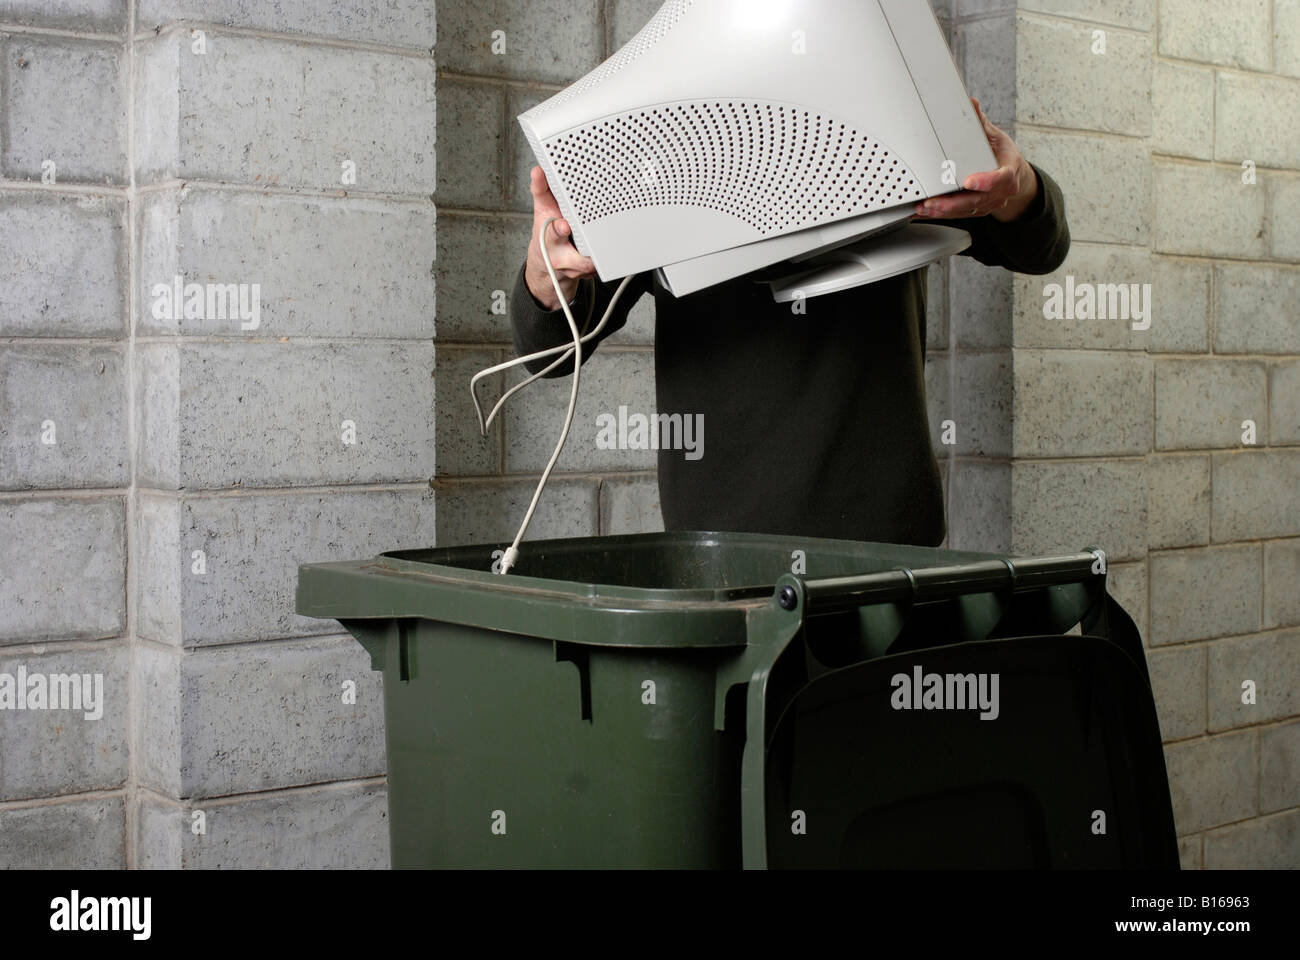 Disposing of obsolete computer technology in a wheelie bin - Stock Image